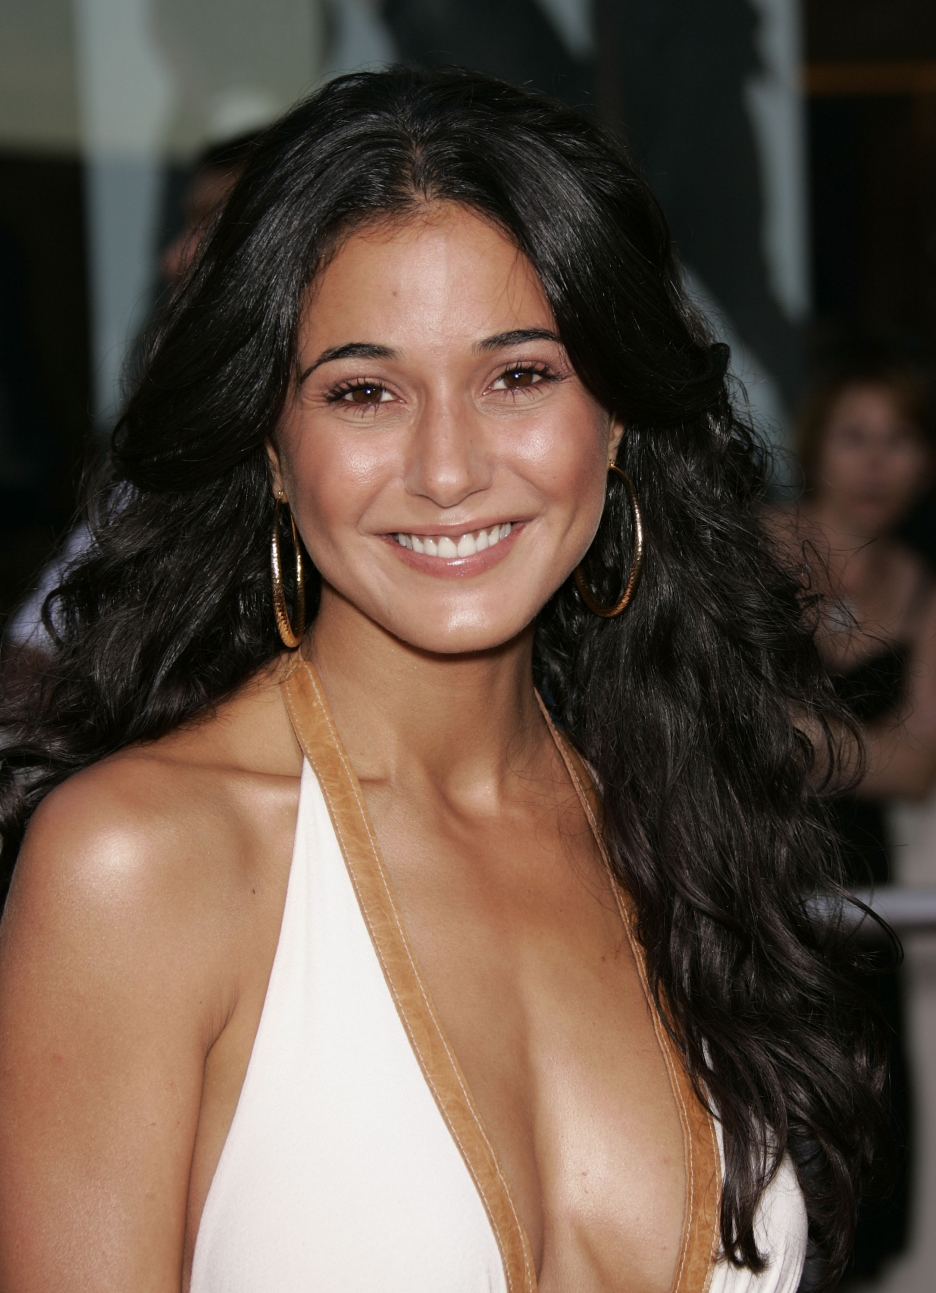 emmanuelle-chriqui-hot